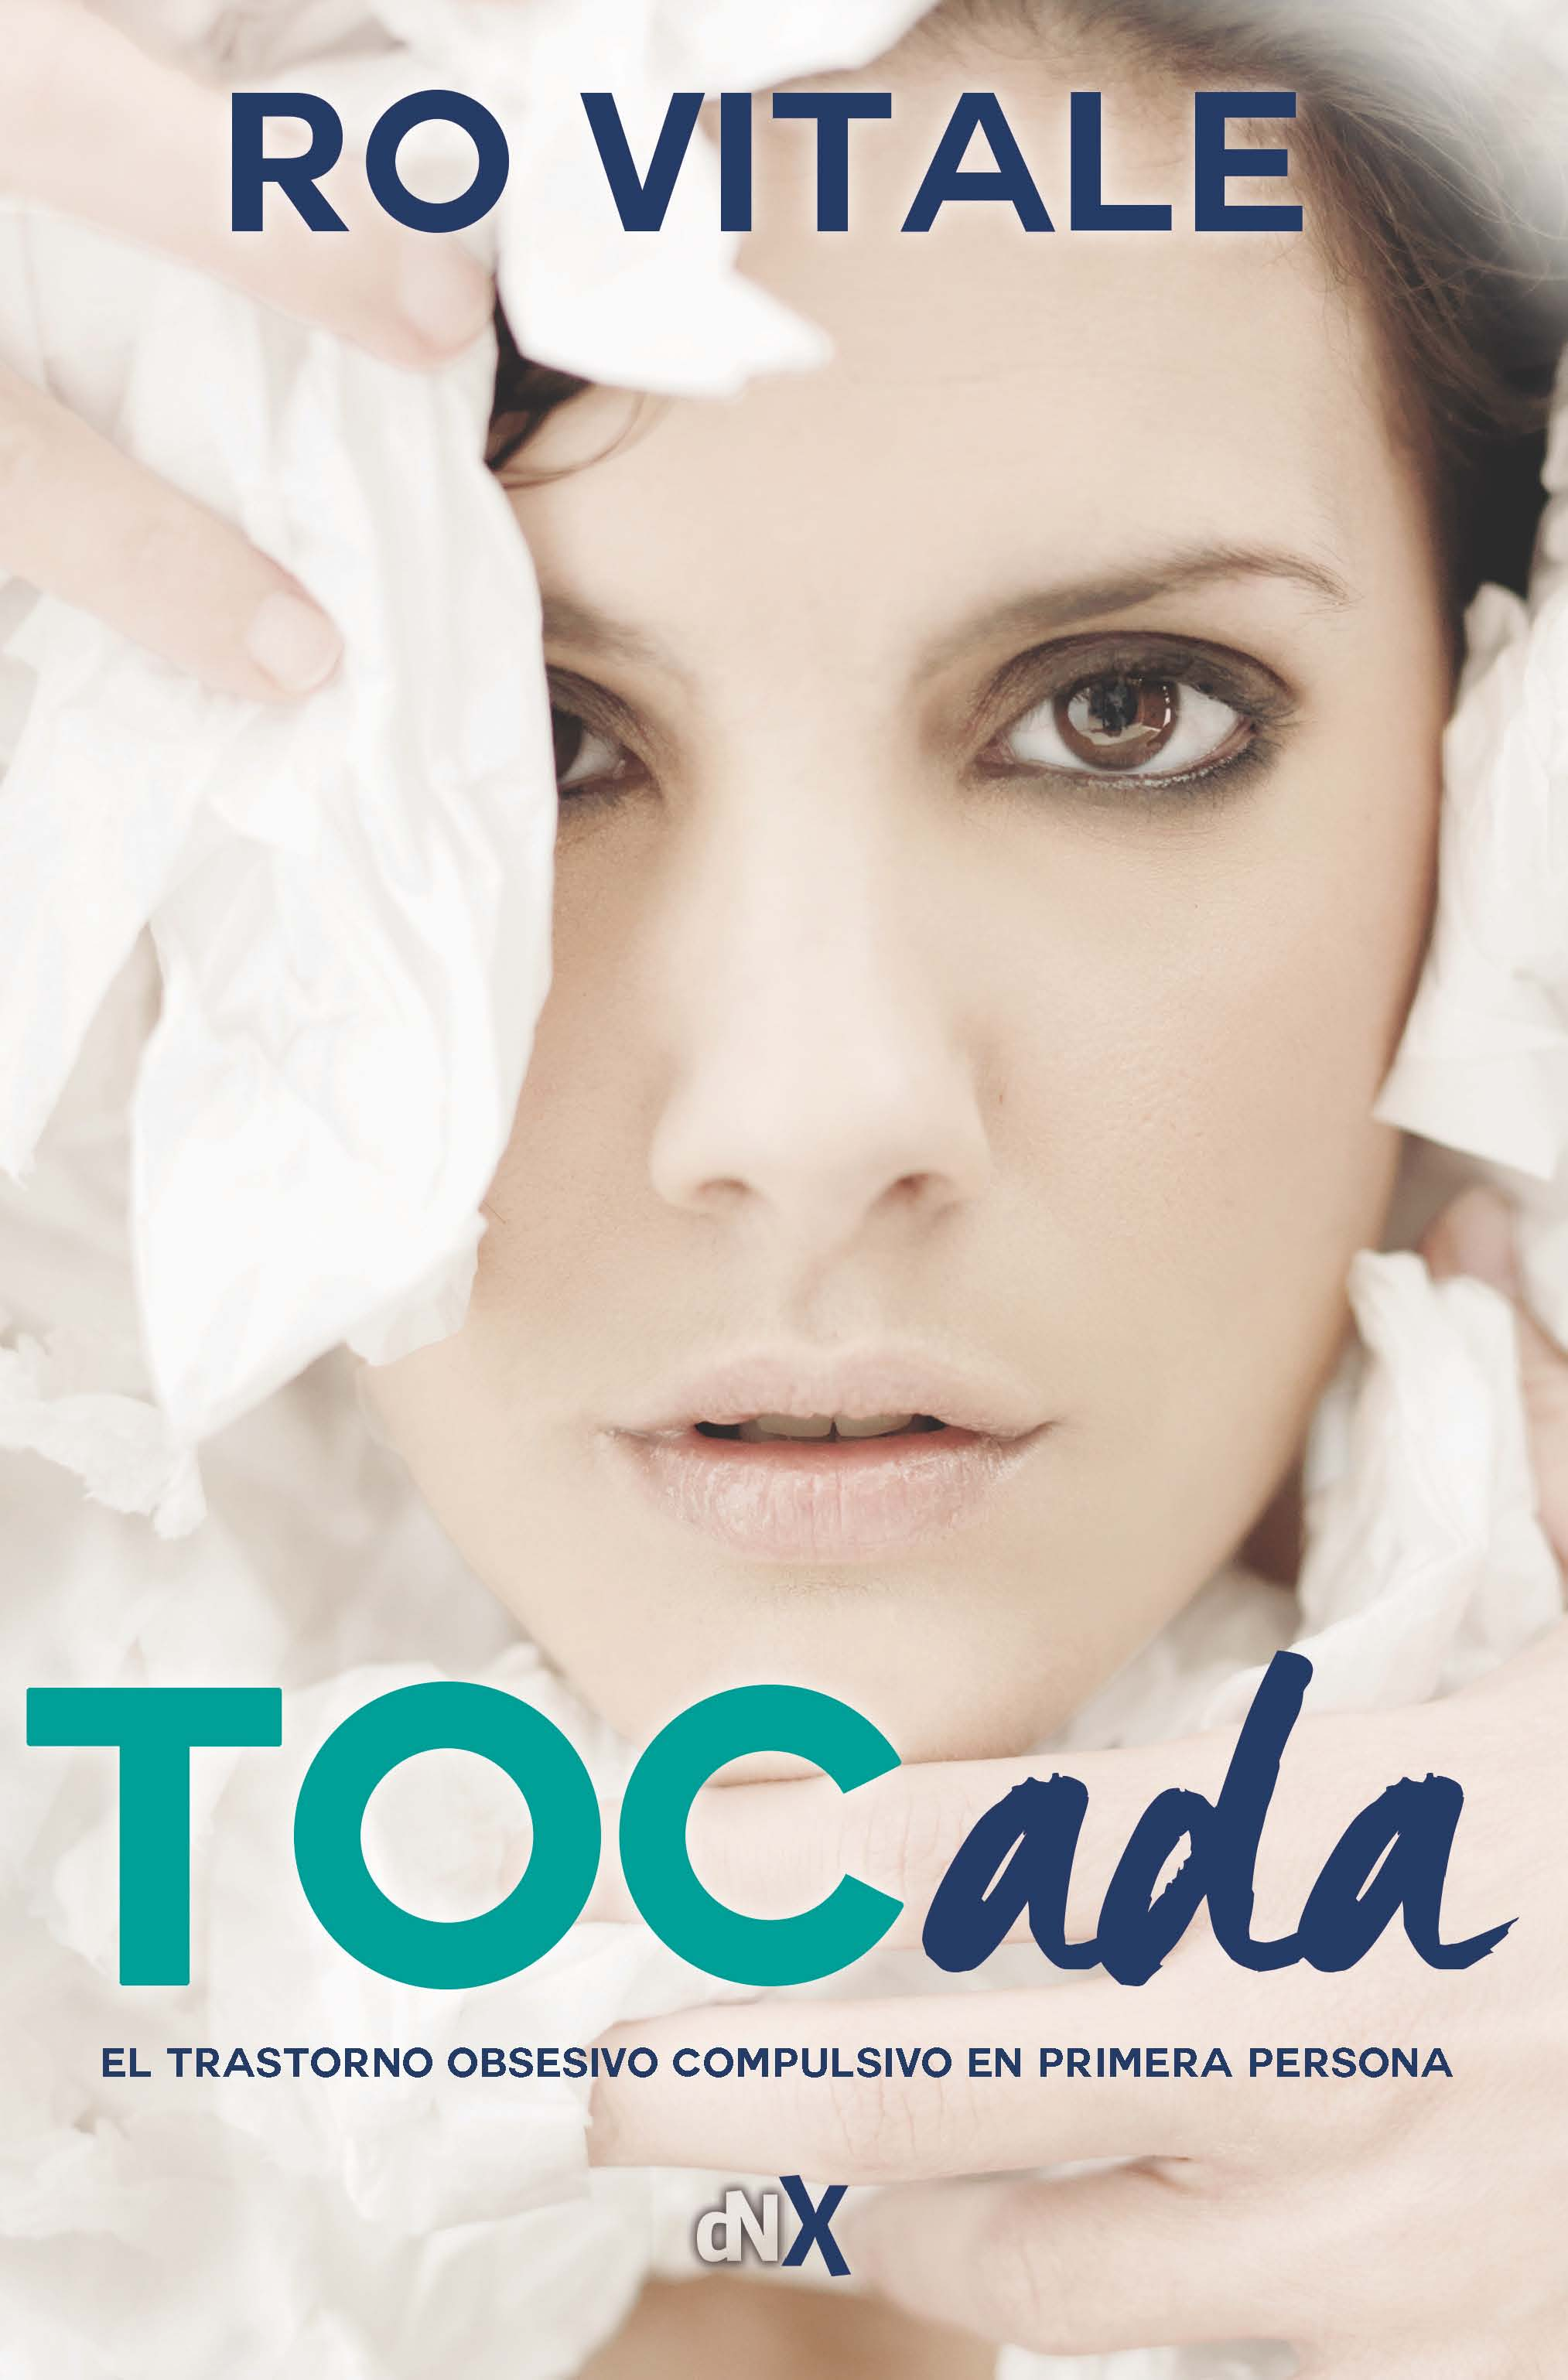 Tocada frontal